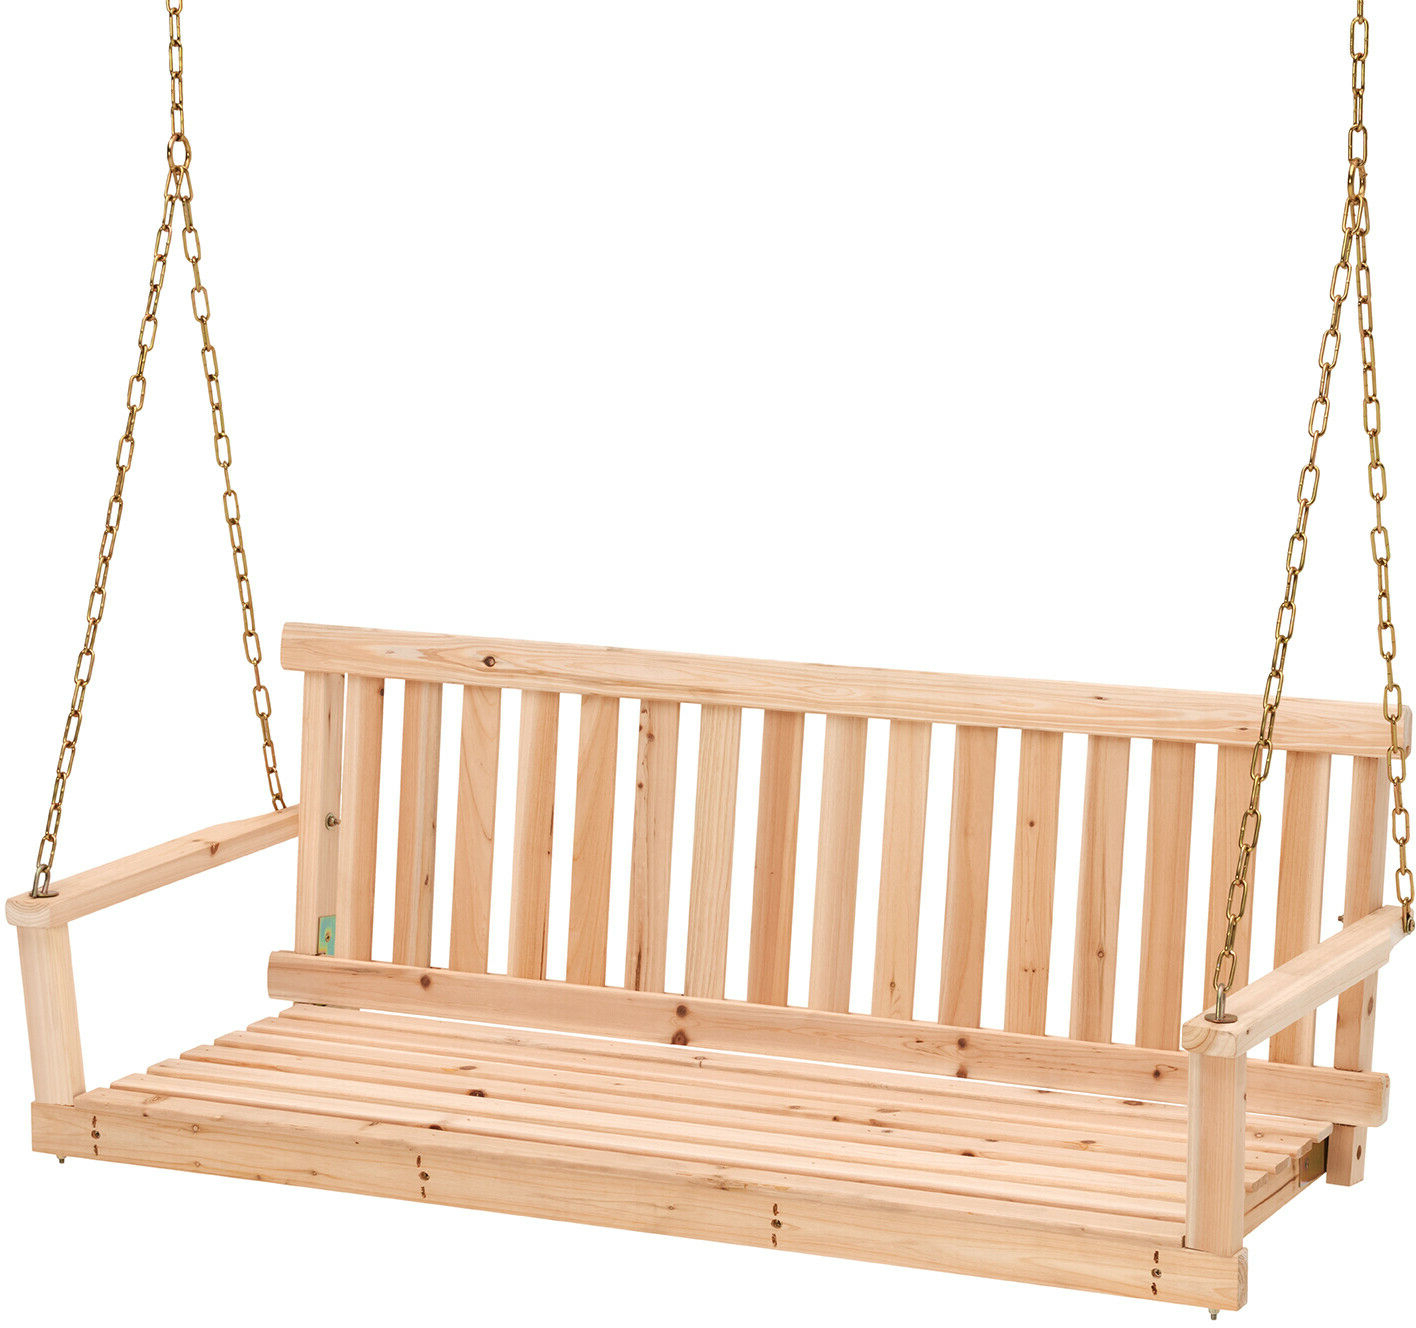 Porch Swings With Chain Intended For Trendy 4 Swing W/ Chains Wood Porch Natural Finish Garden Yard Patio Outdoor Furniture (View 21 of 30)